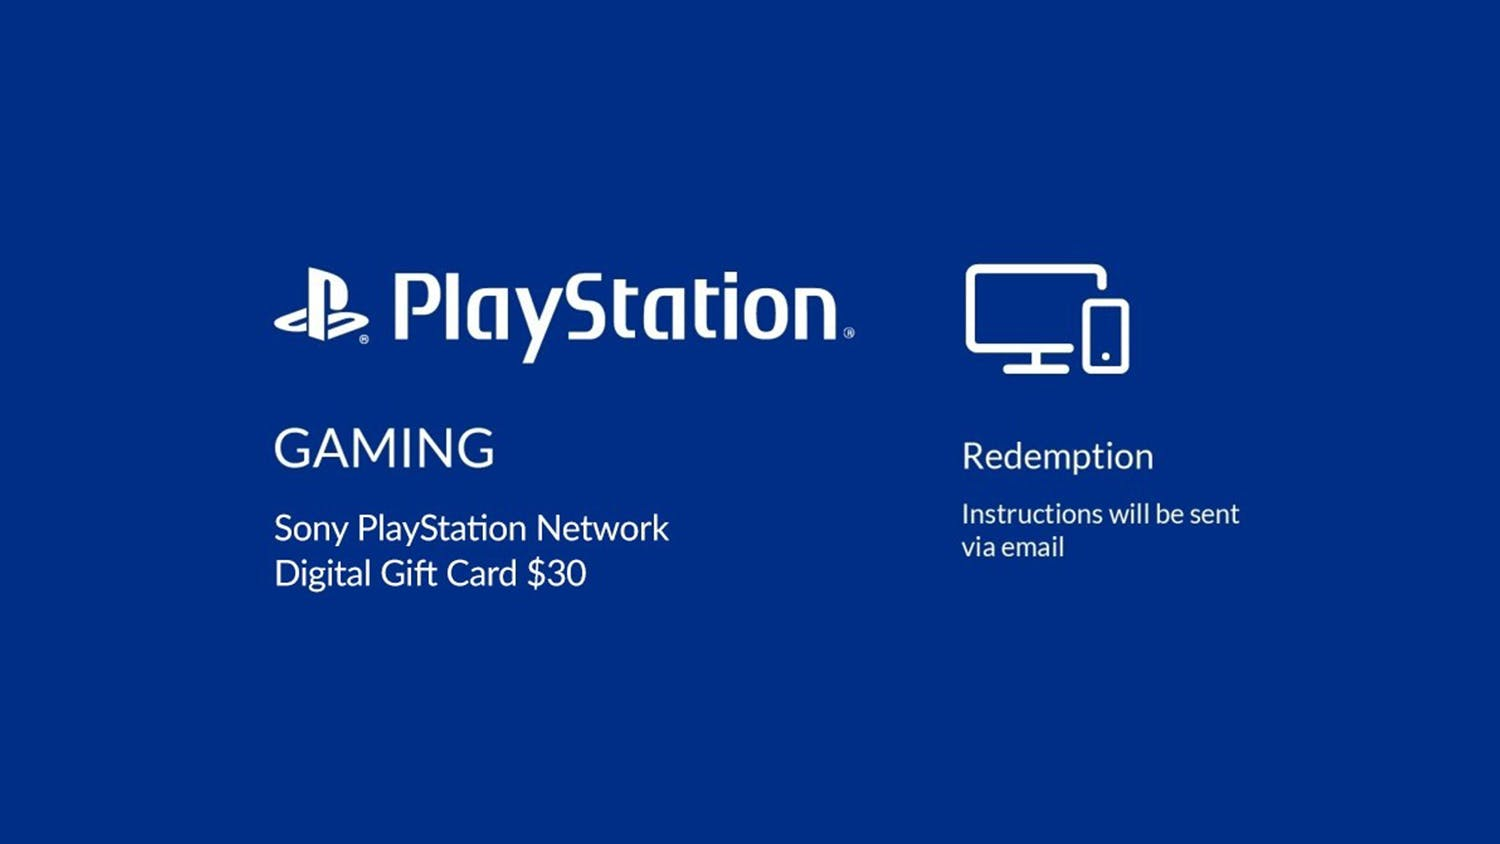 PlayStation $30 Network Card